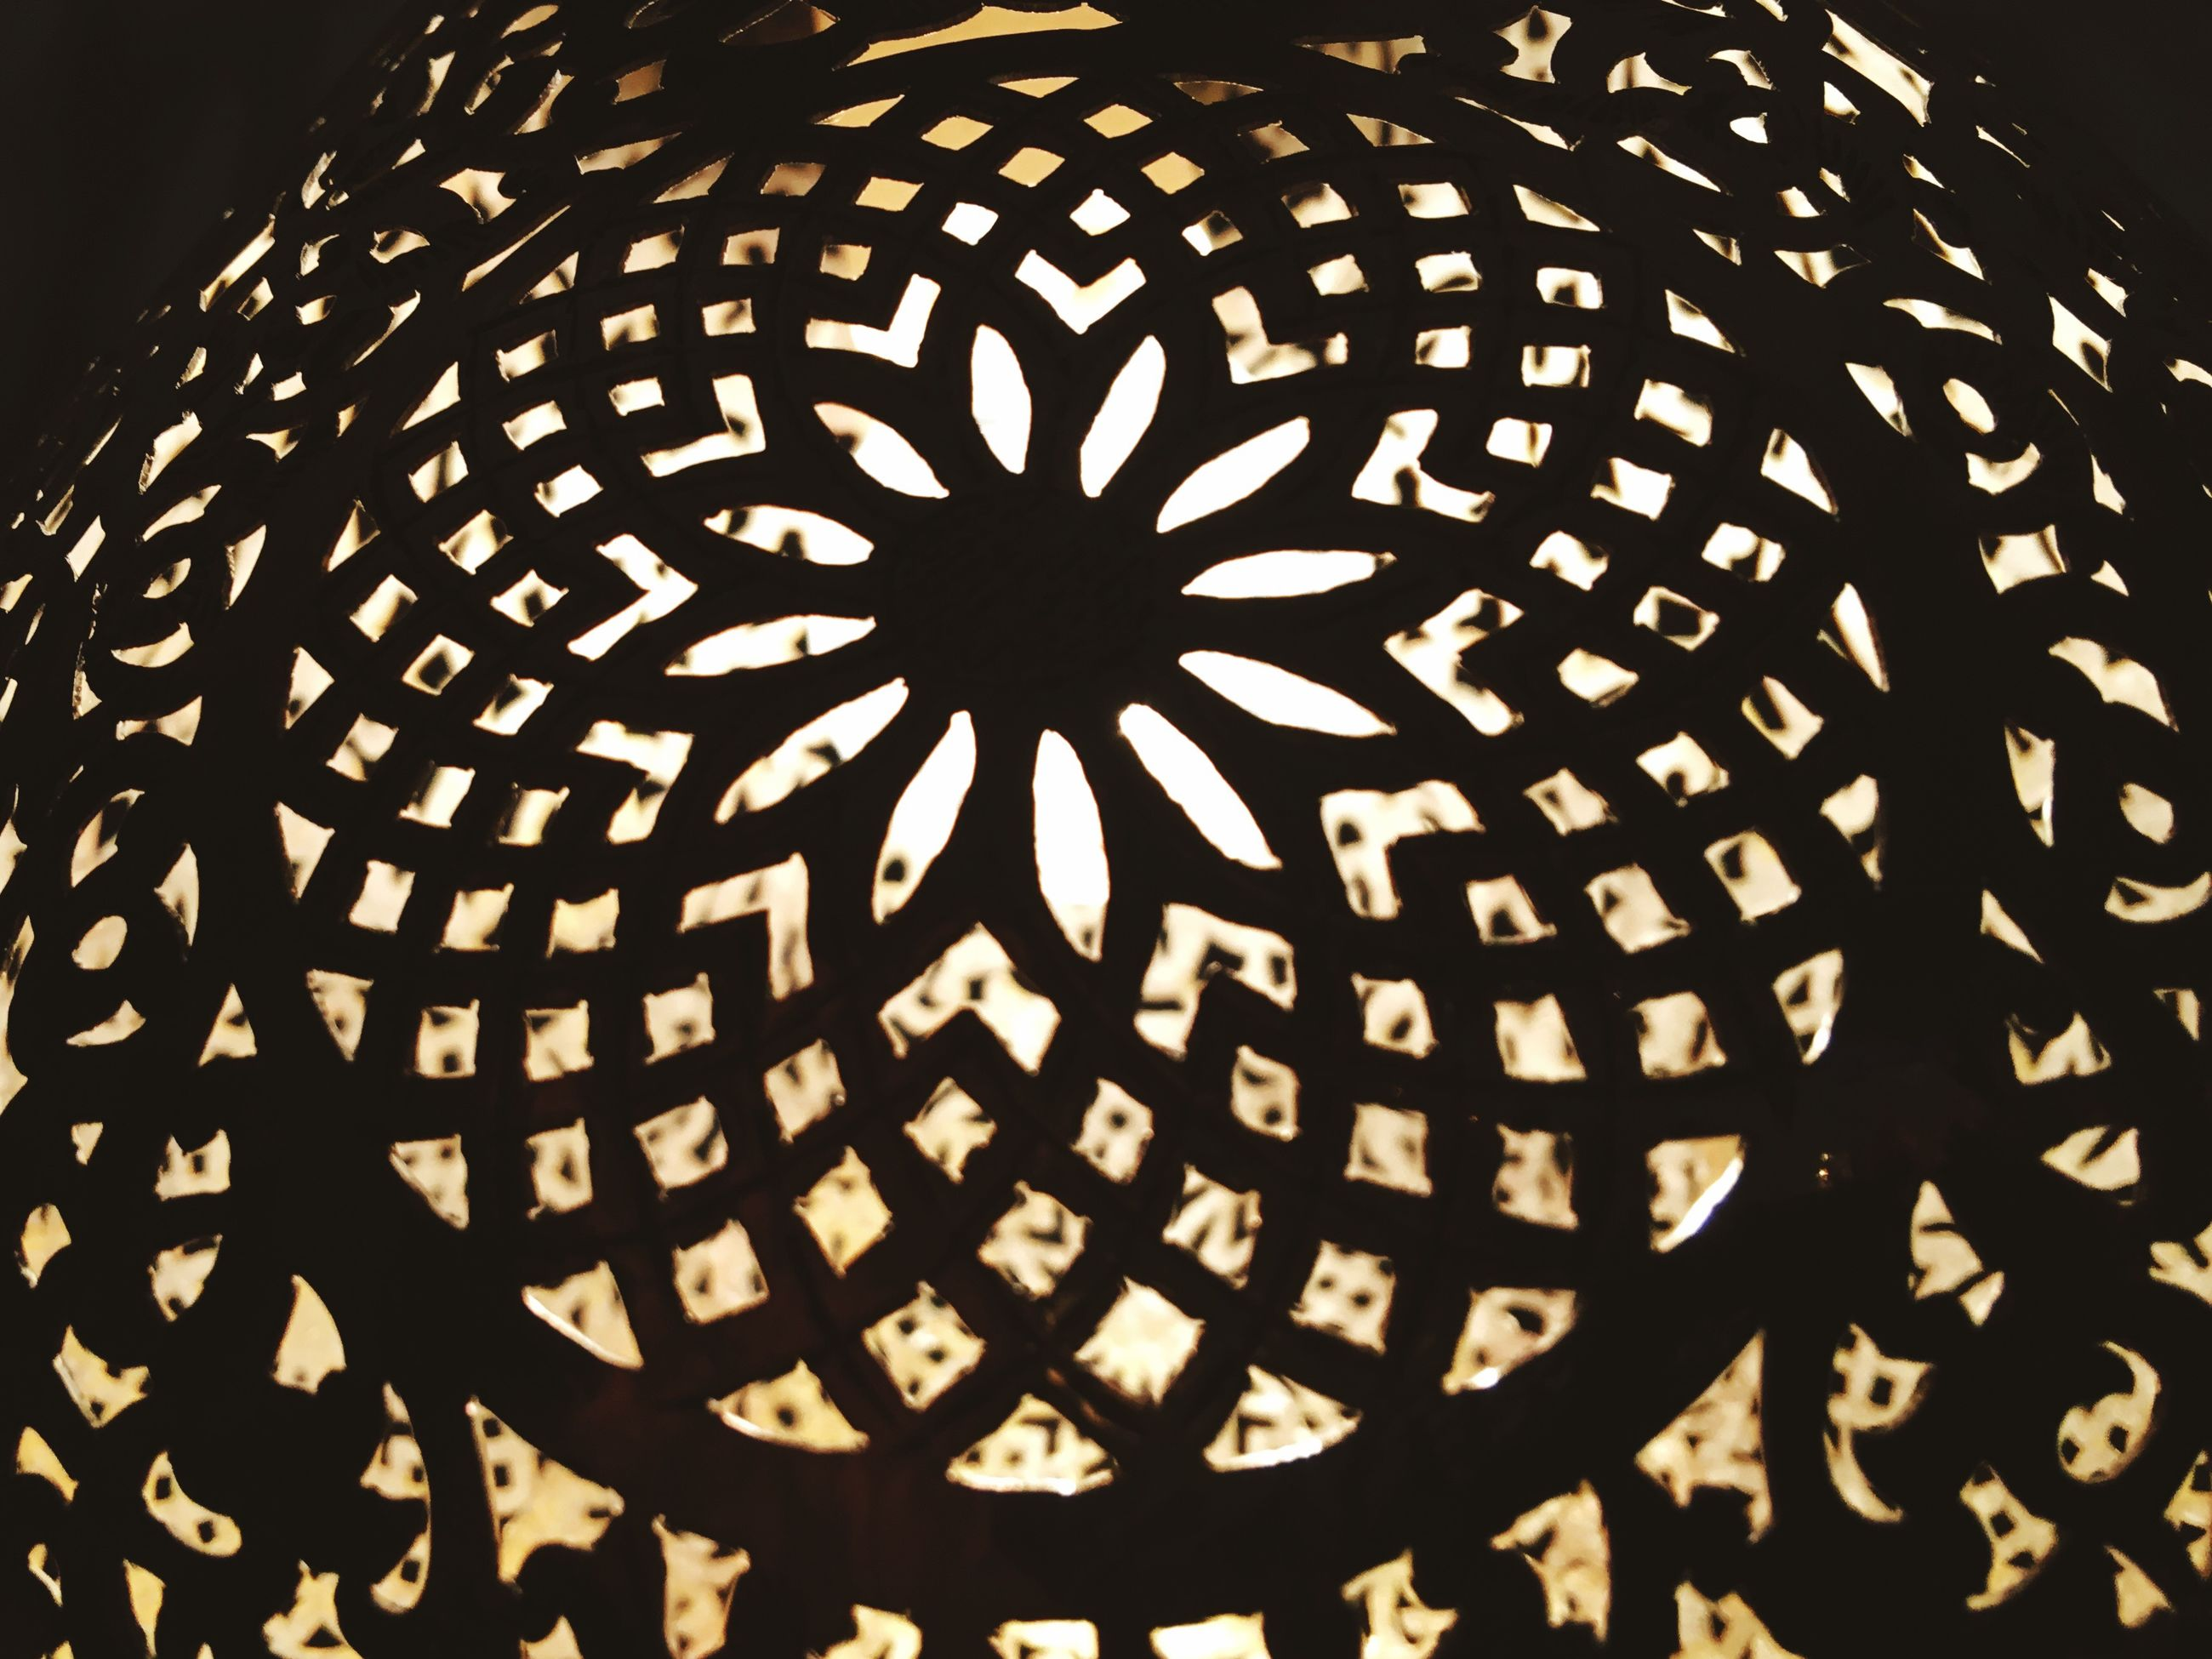 pattern, design, low angle view, indoors, night, illuminated, backgrounds, full frame, ceiling, shape, repetition, circle, no people, abstract, close-up, geometric shape, architectural feature, built structure, architecture, ornate